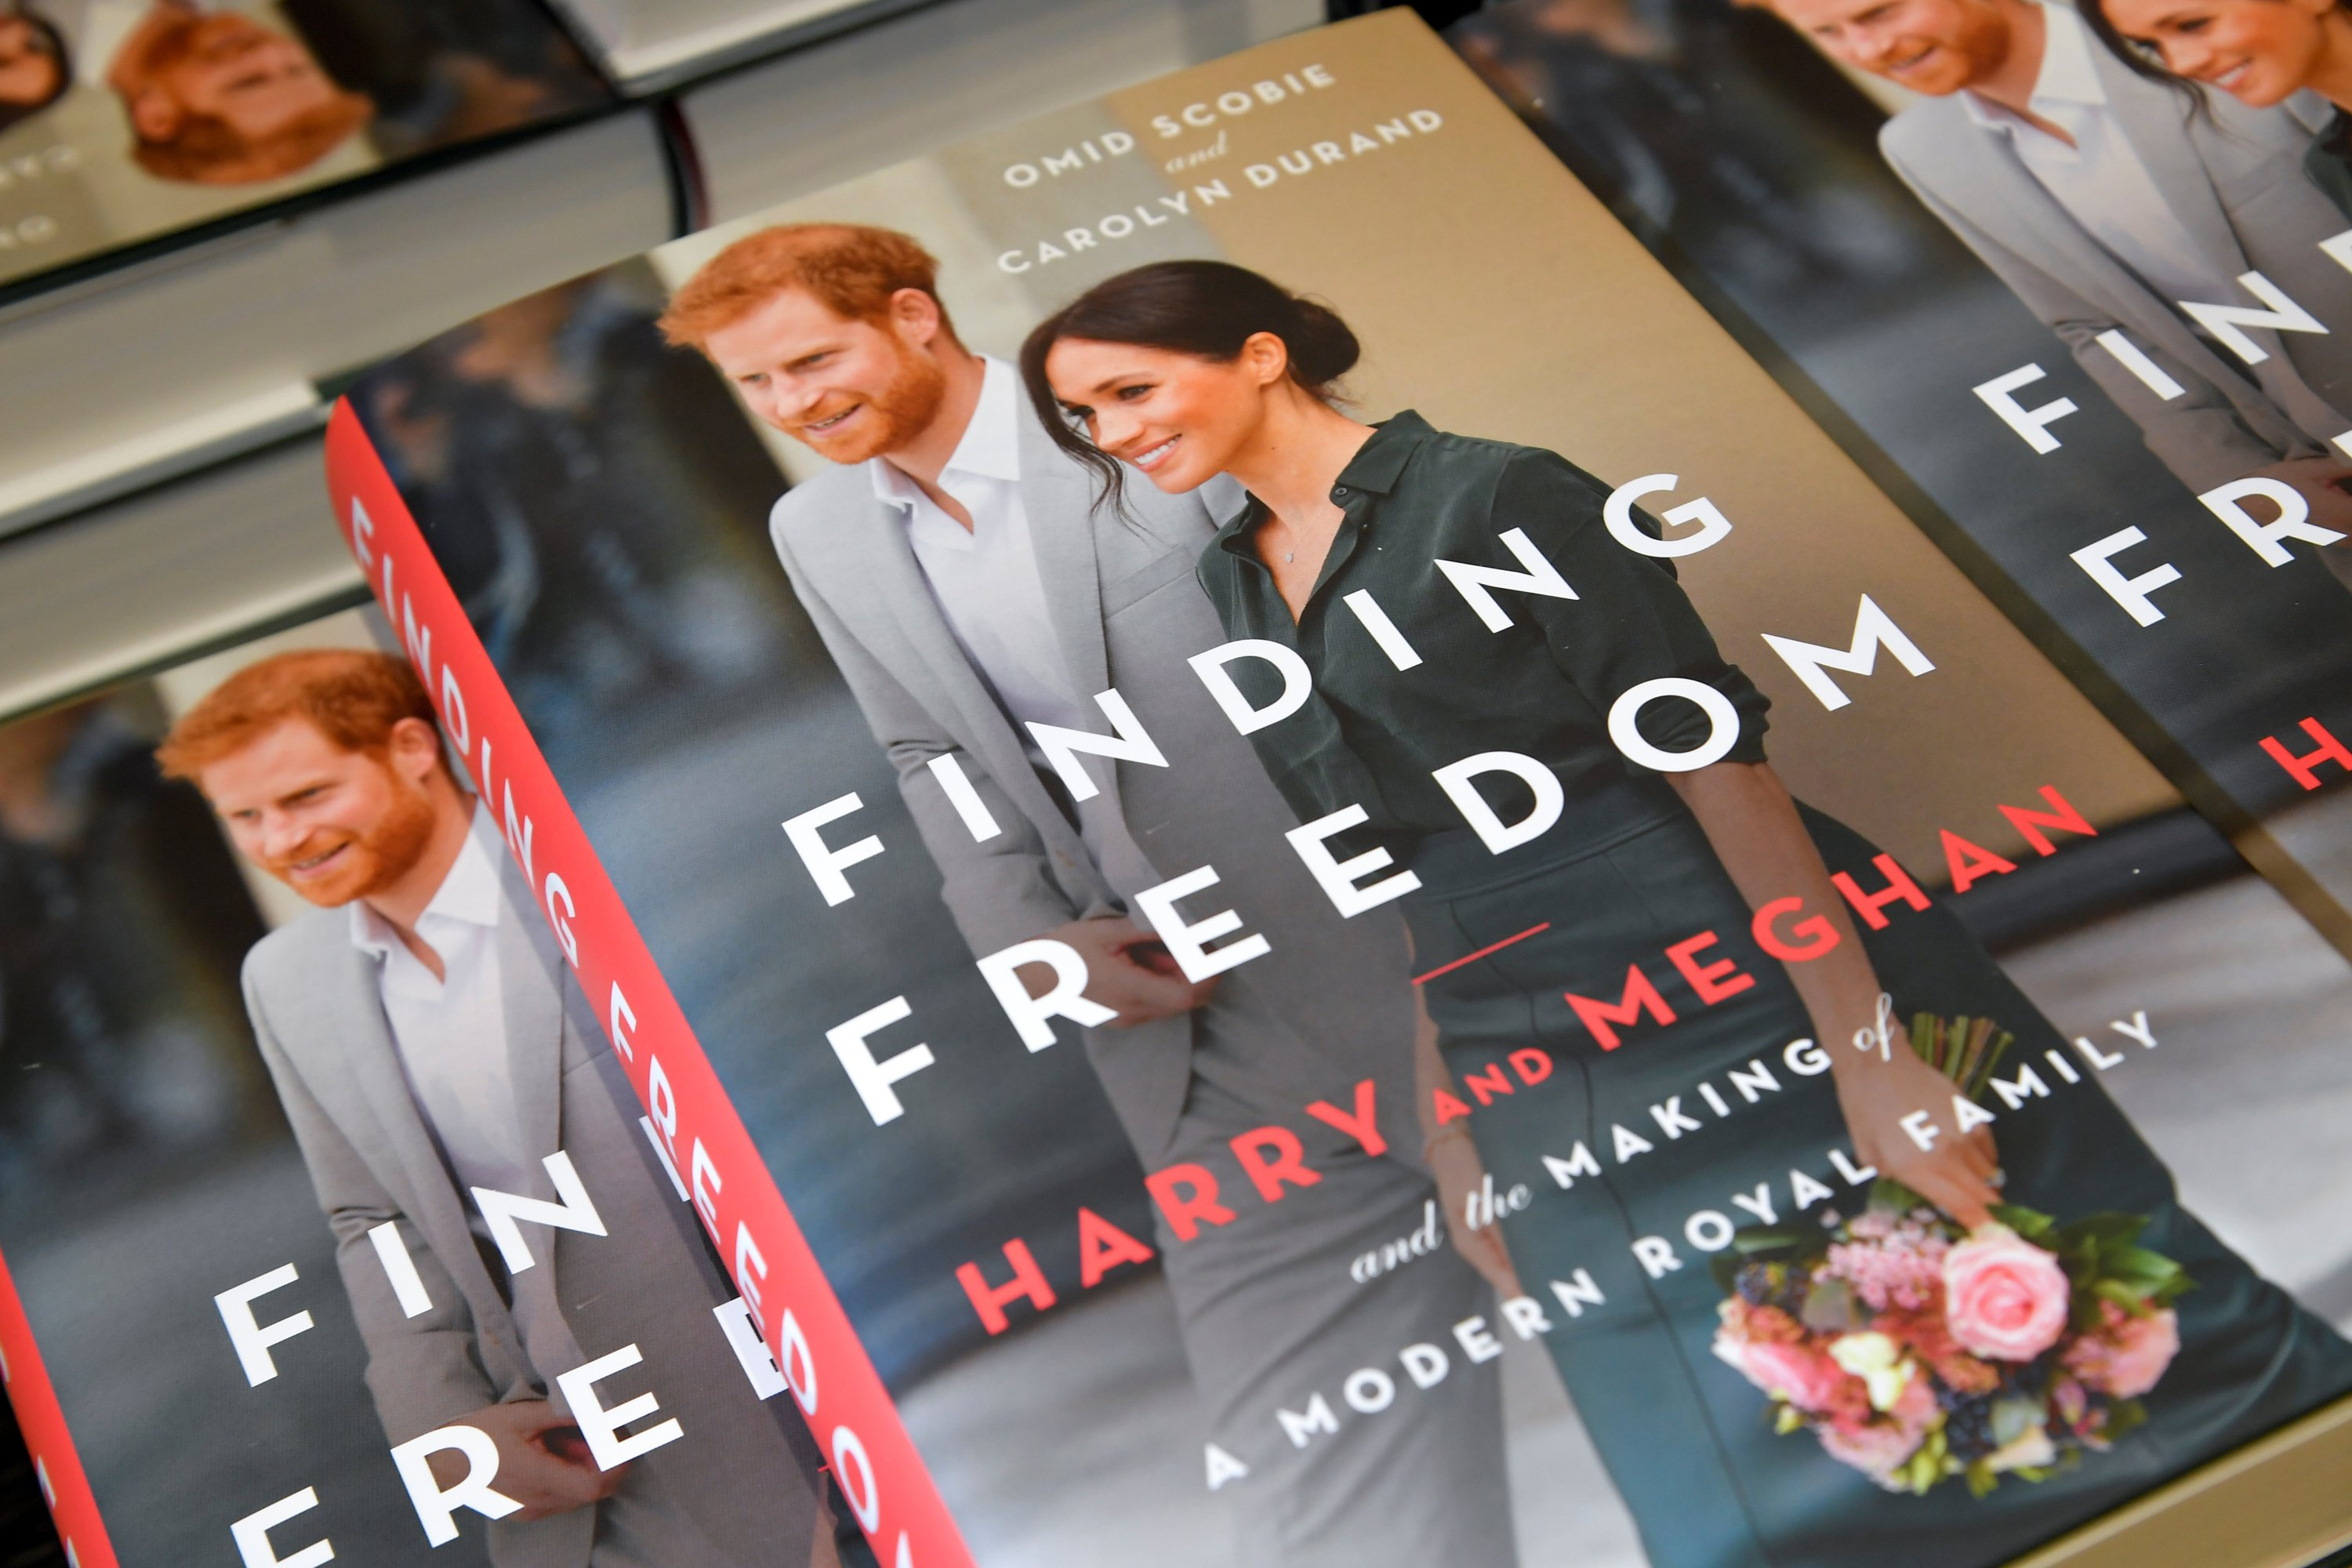 Copies of 'Finding Freedom', an unofficial biography on Prince Harry and Meghan Markle, the Duke and Duchess of Sussex, are seen on display at a Waterstones bookshop in London, Britain August 12, 2020. (REUTERS Photo)